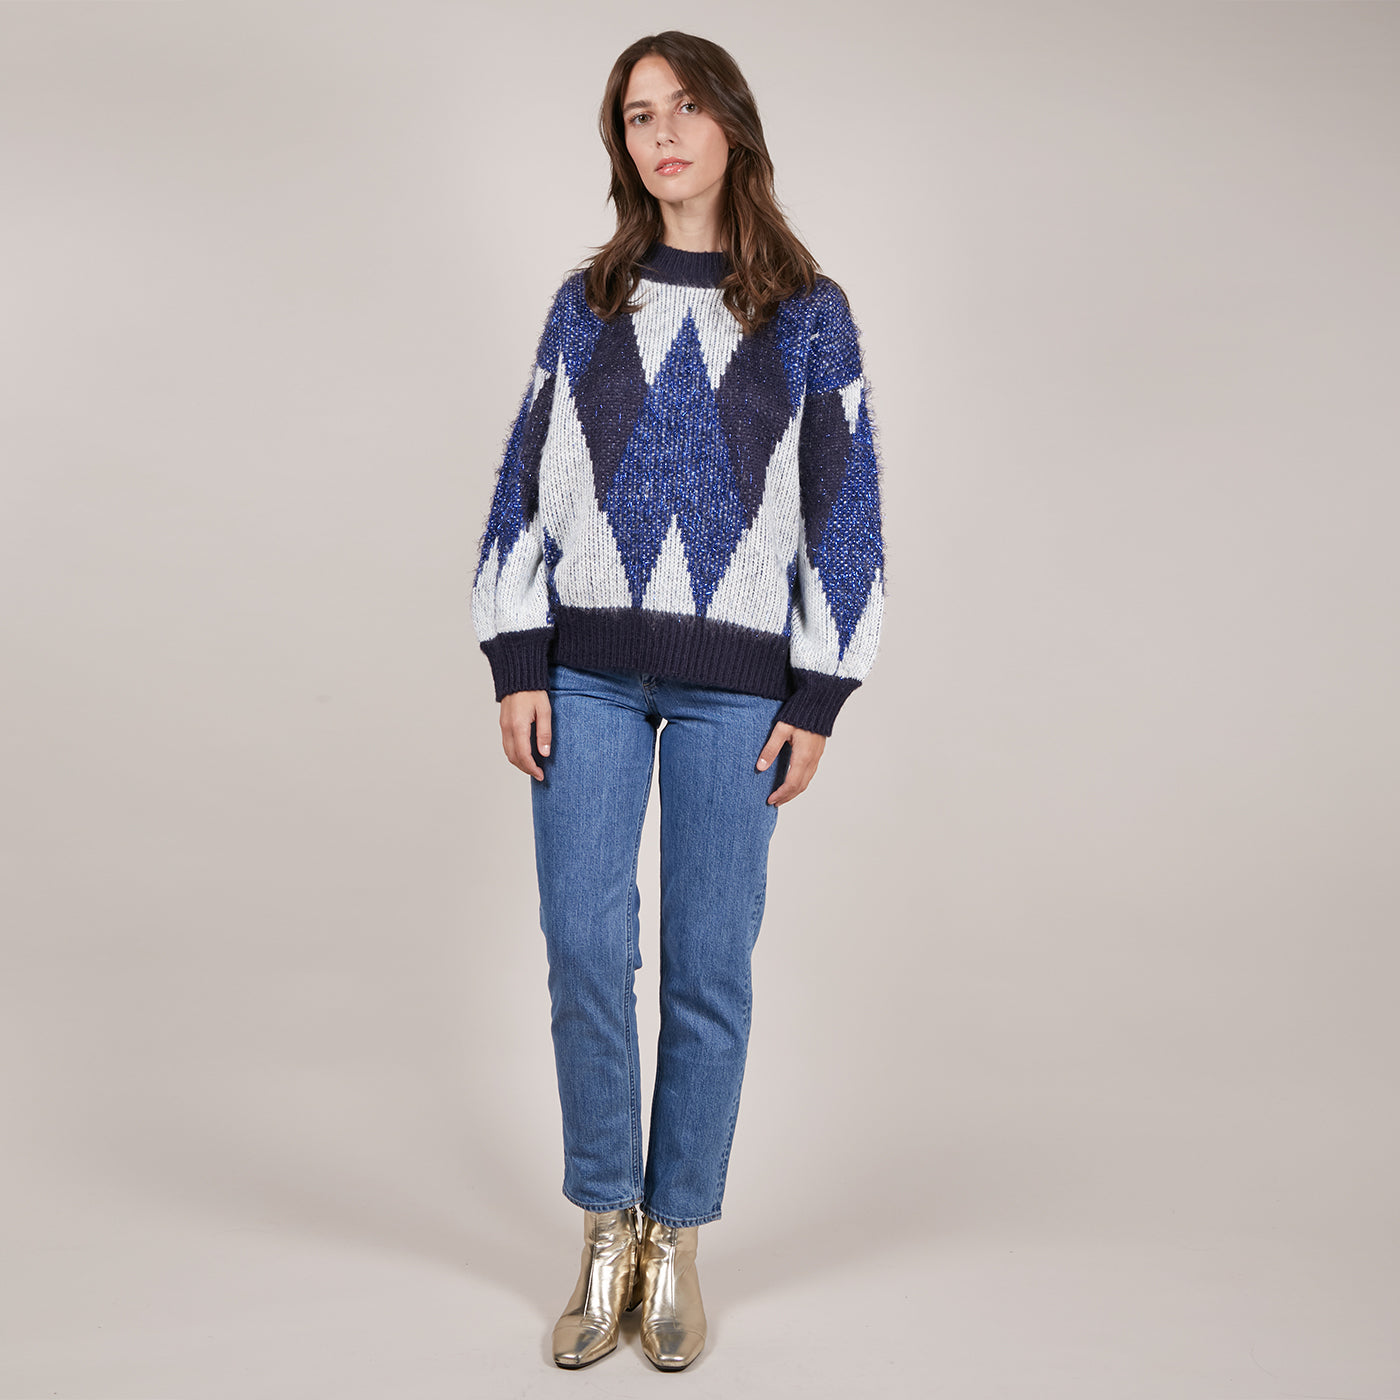 NOELA SWEATER